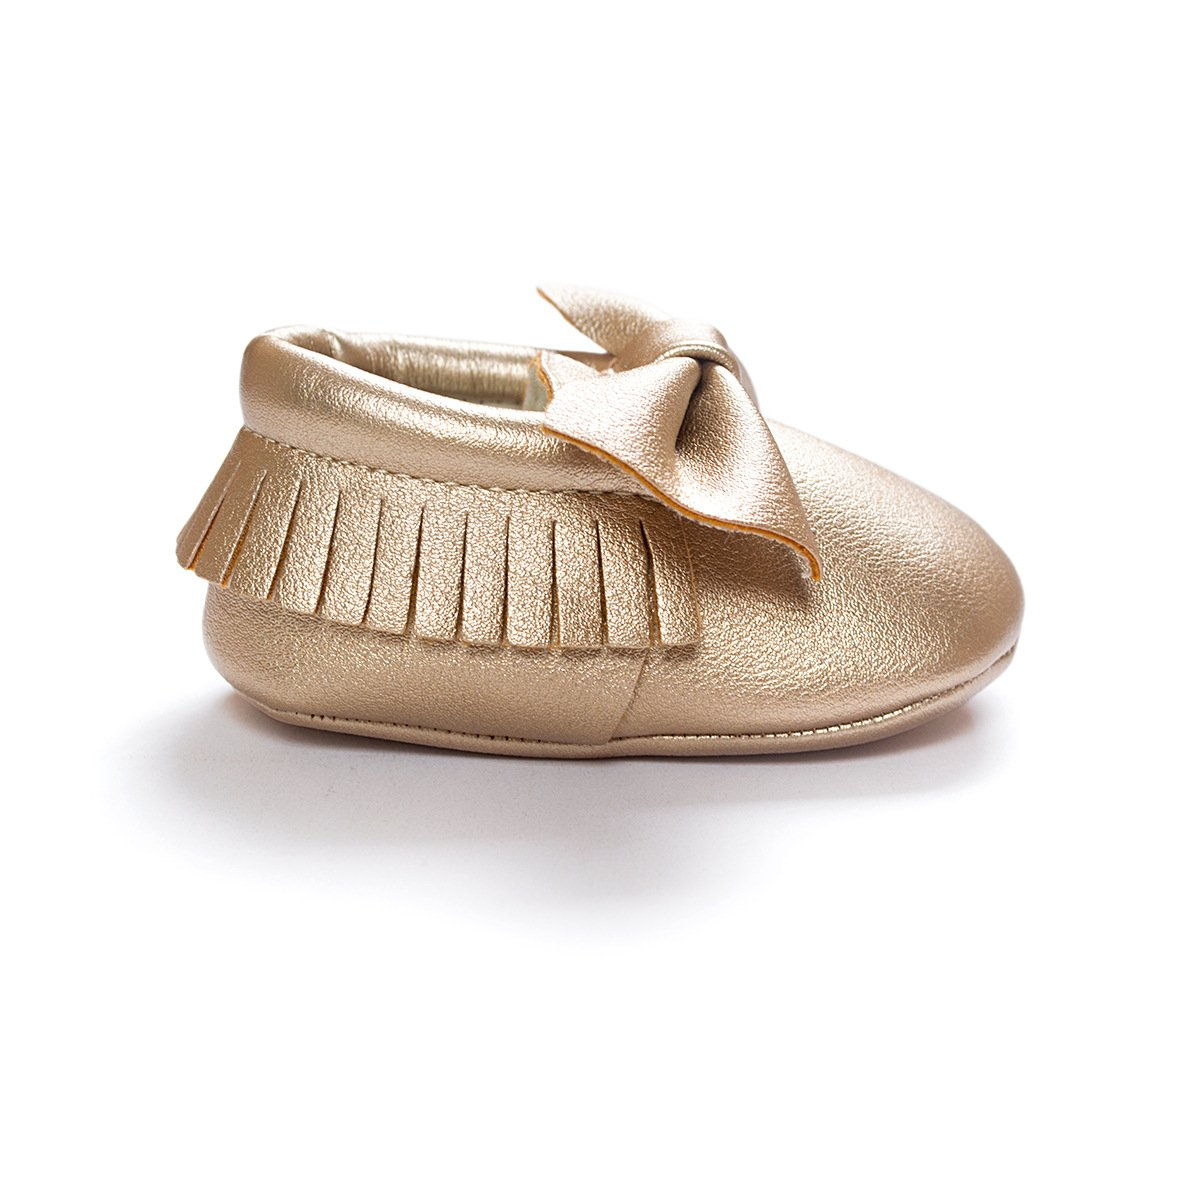 C&H Baby boy girl soft cute tassel bow tassels baby cot shoes baby shoes (11cm(0-6months), 5107 golden) by C&H (Image #3)